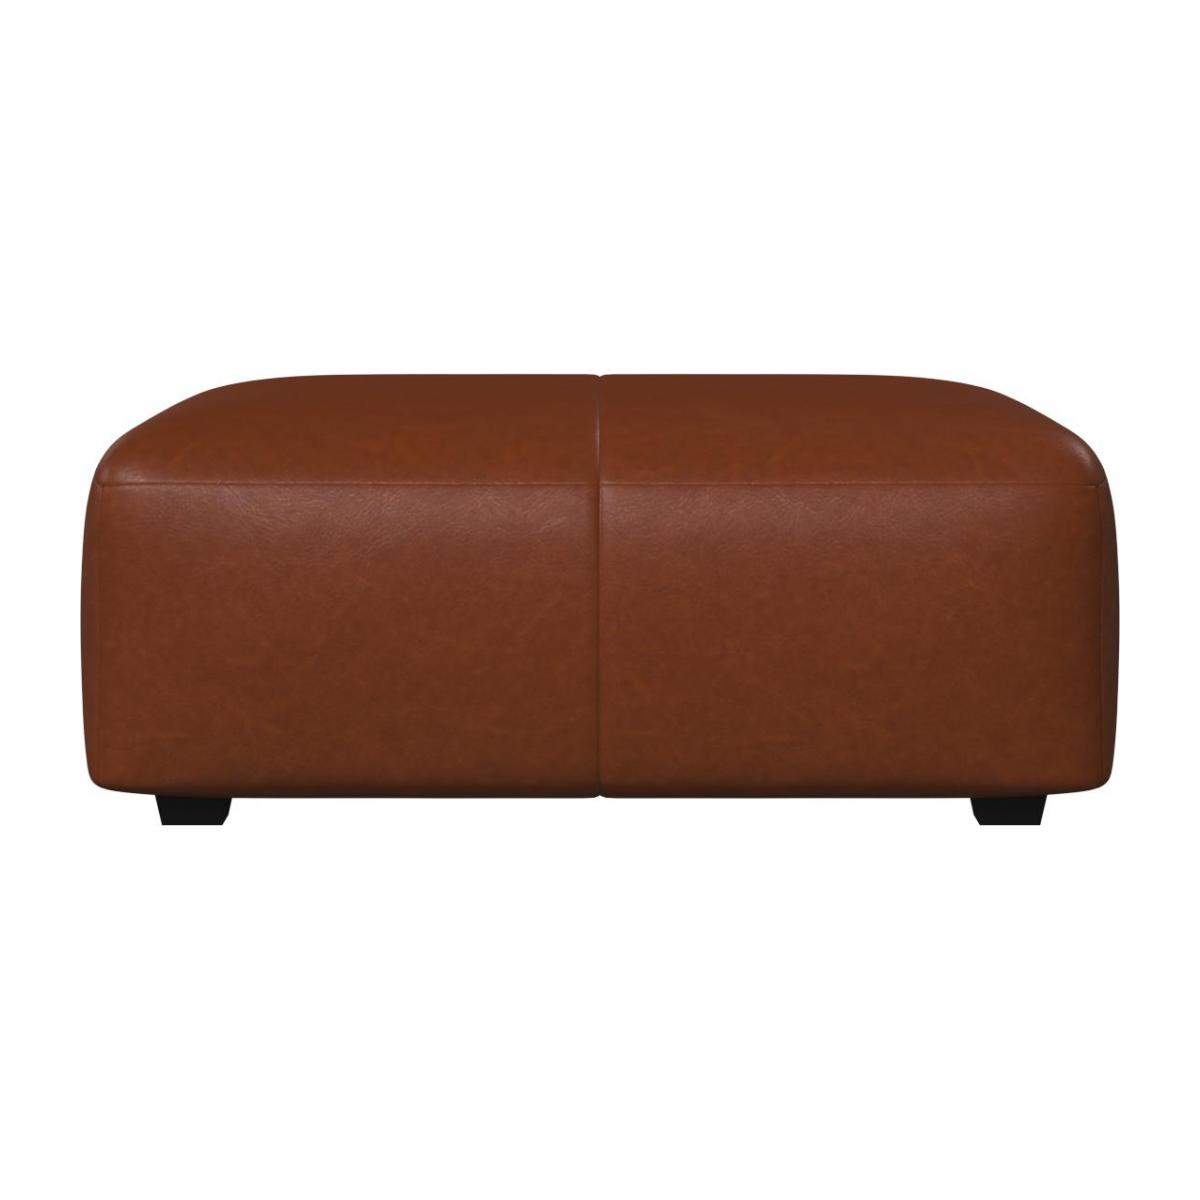 Footstool in Vintage aniline leather, old chestnut n°3